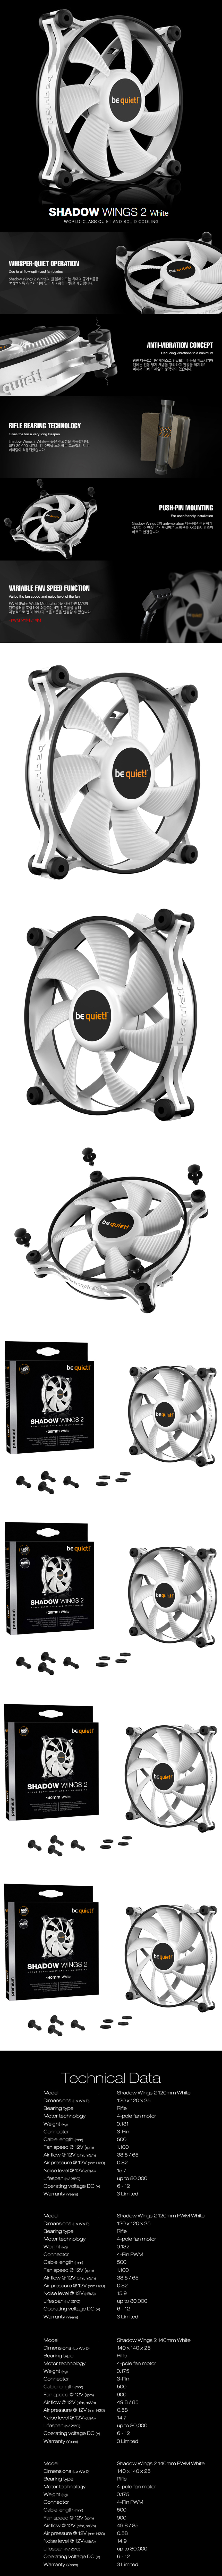 be quiet SHADOW WINGS 2 (140mm White)